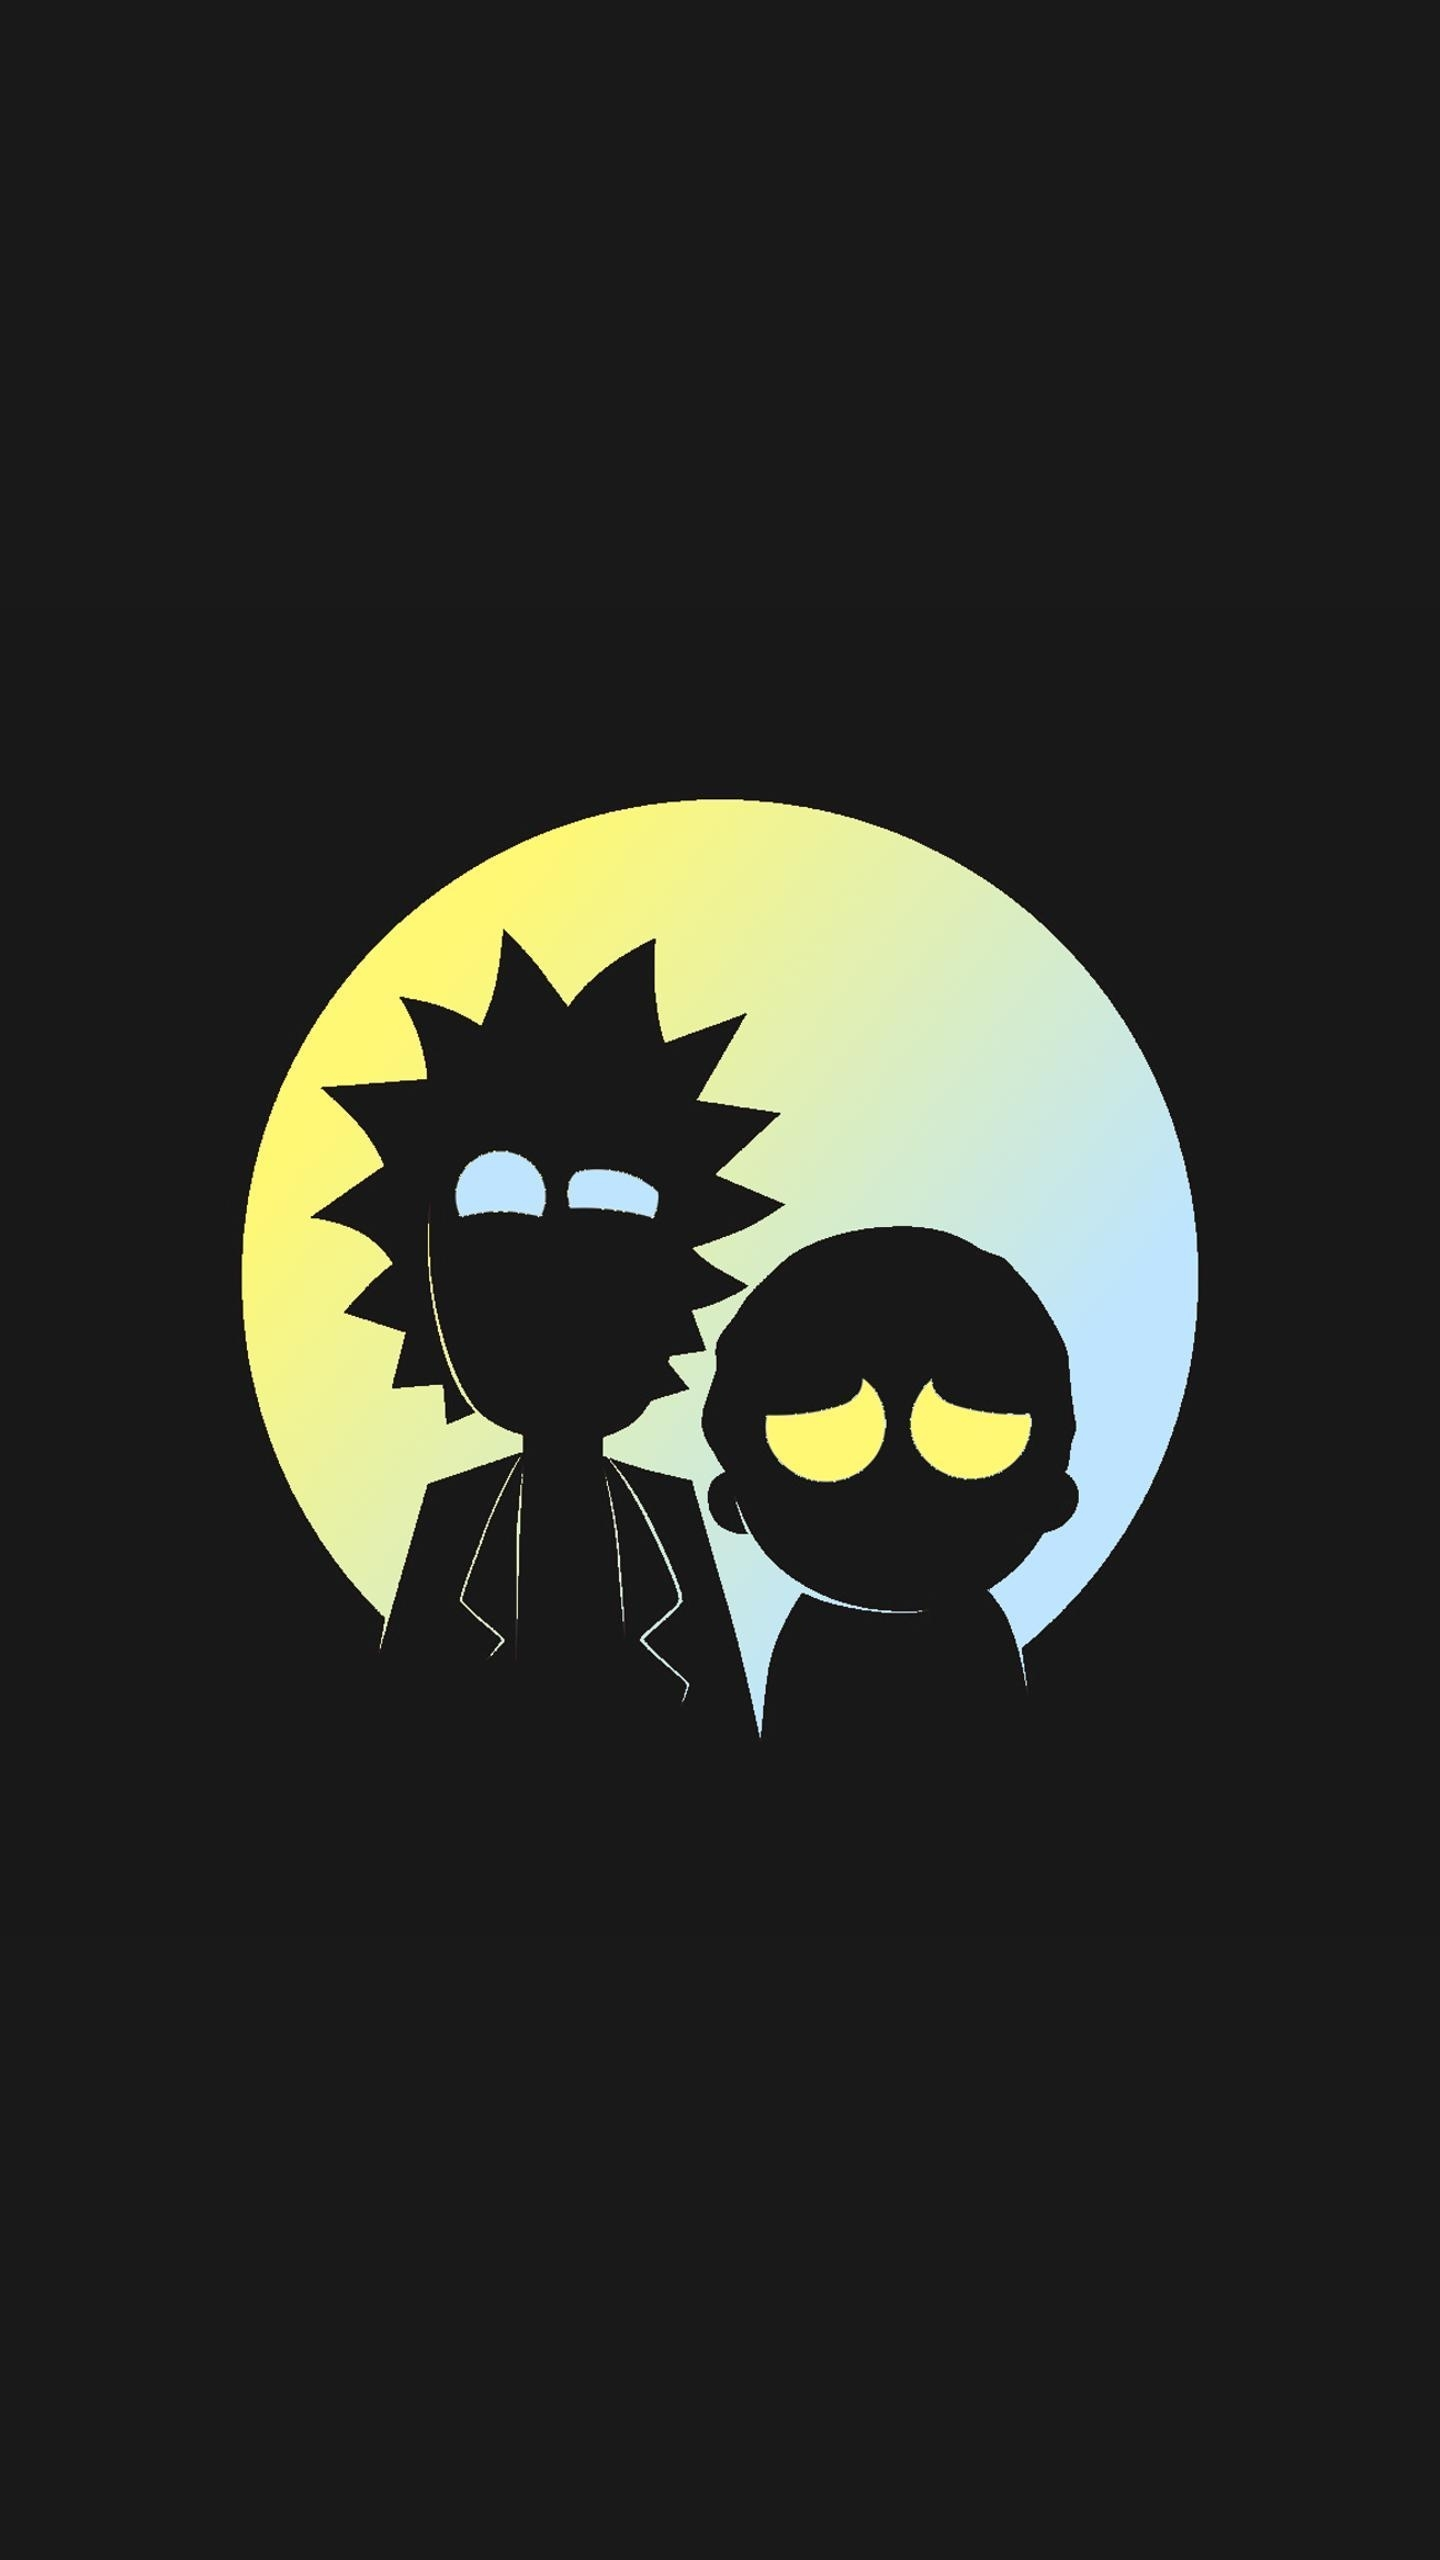 rick and morty mobile wallpaper | cool wallpaper hd